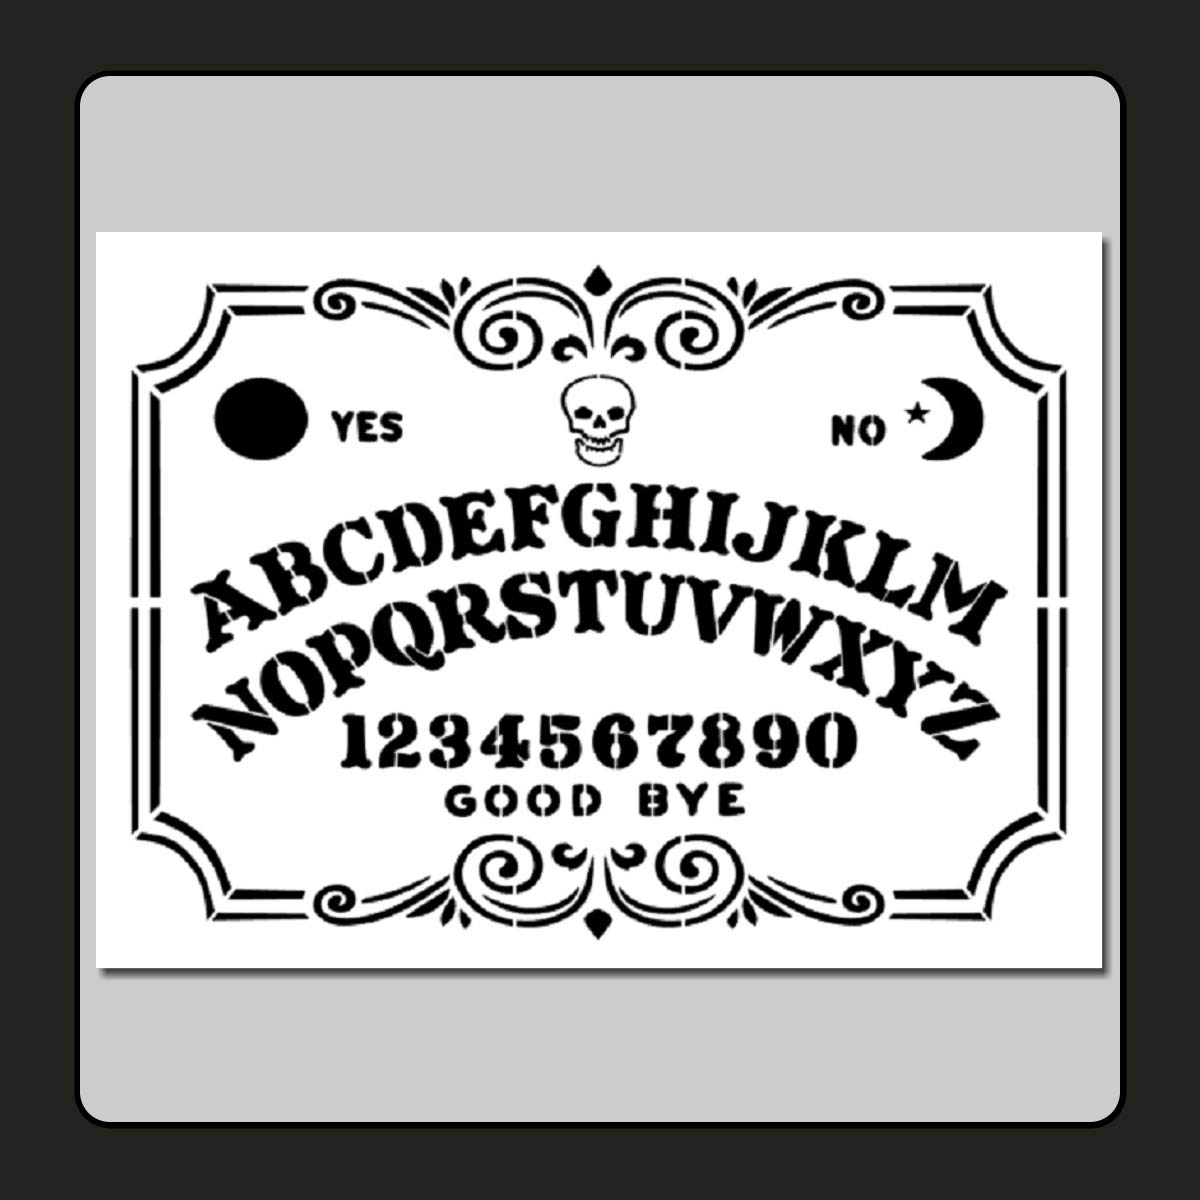 9 X 12 inch Decorative Ouija/Spirit Board Face Stencil Template Skull/Supernatural/Ghost/Halloween by The Craftee Dragon